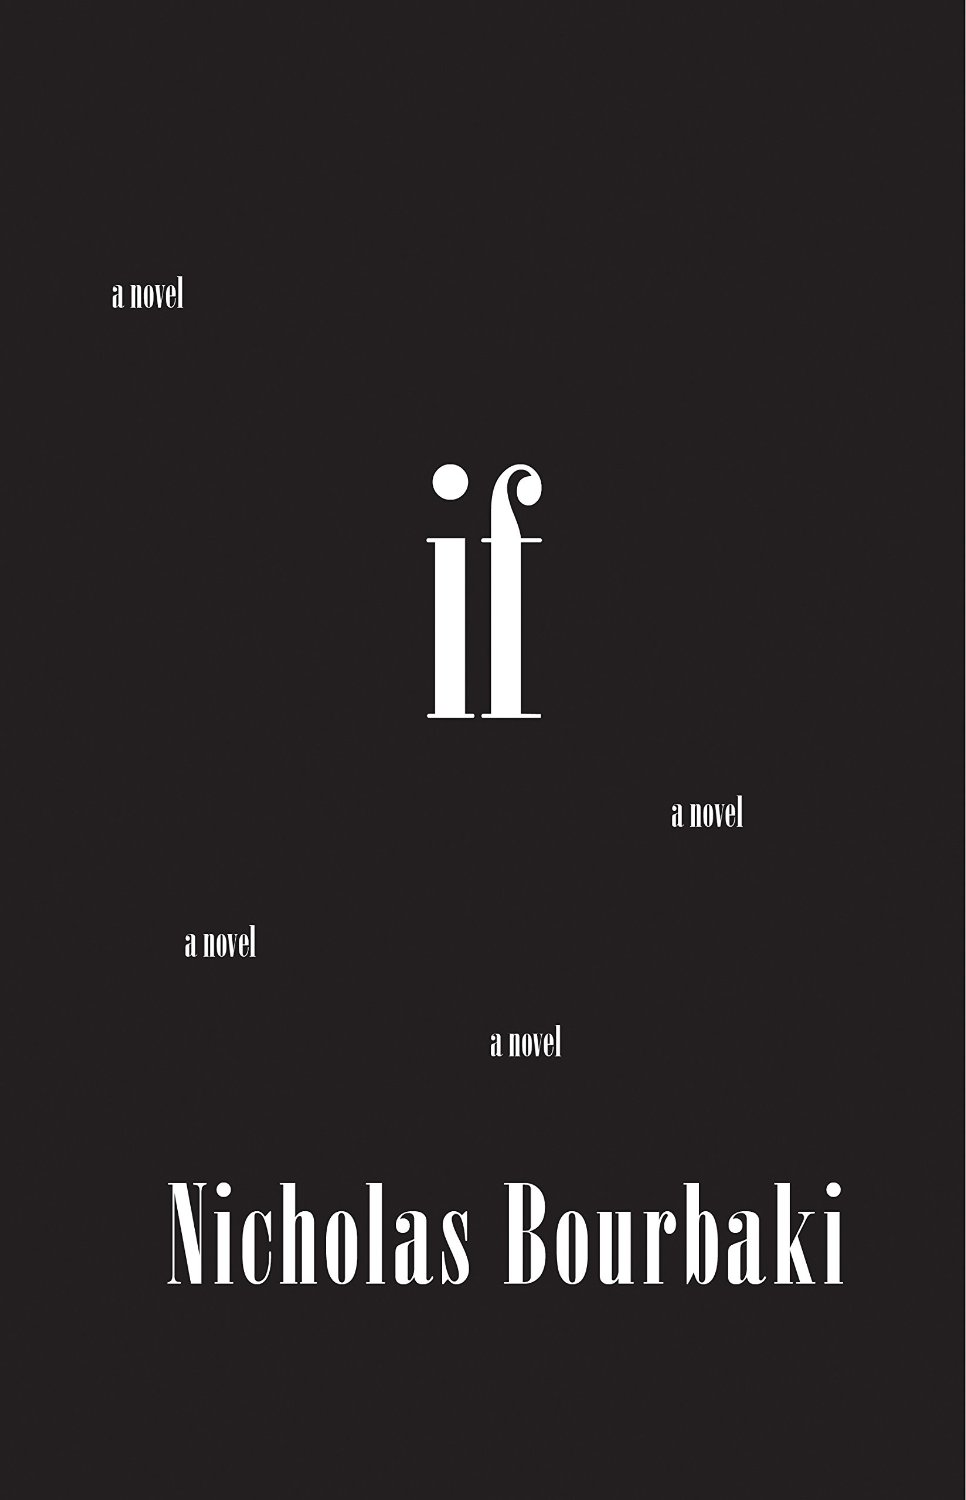 If: A Novel by Nicholas Bourbaki